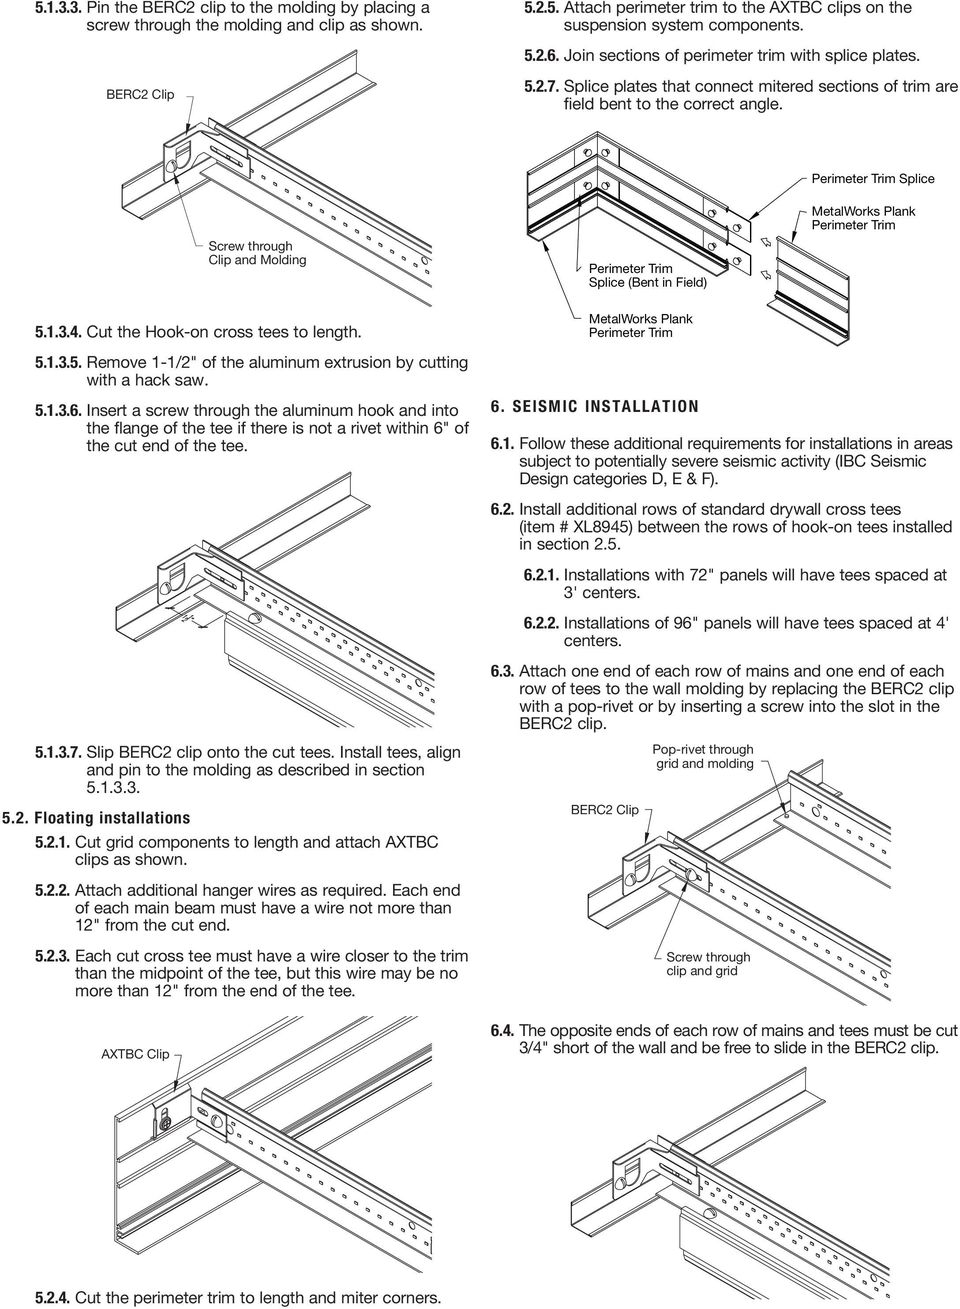 "insert drawing of splice plate Splice Screw through Clip and Molding Splice (Bent in Field) 5.1.3.4. Cut the Hook-on cross tees to length. 5.1.3.5. Remove 1-1/2"" of the aluminum extrusion by cutting with a hack saw."